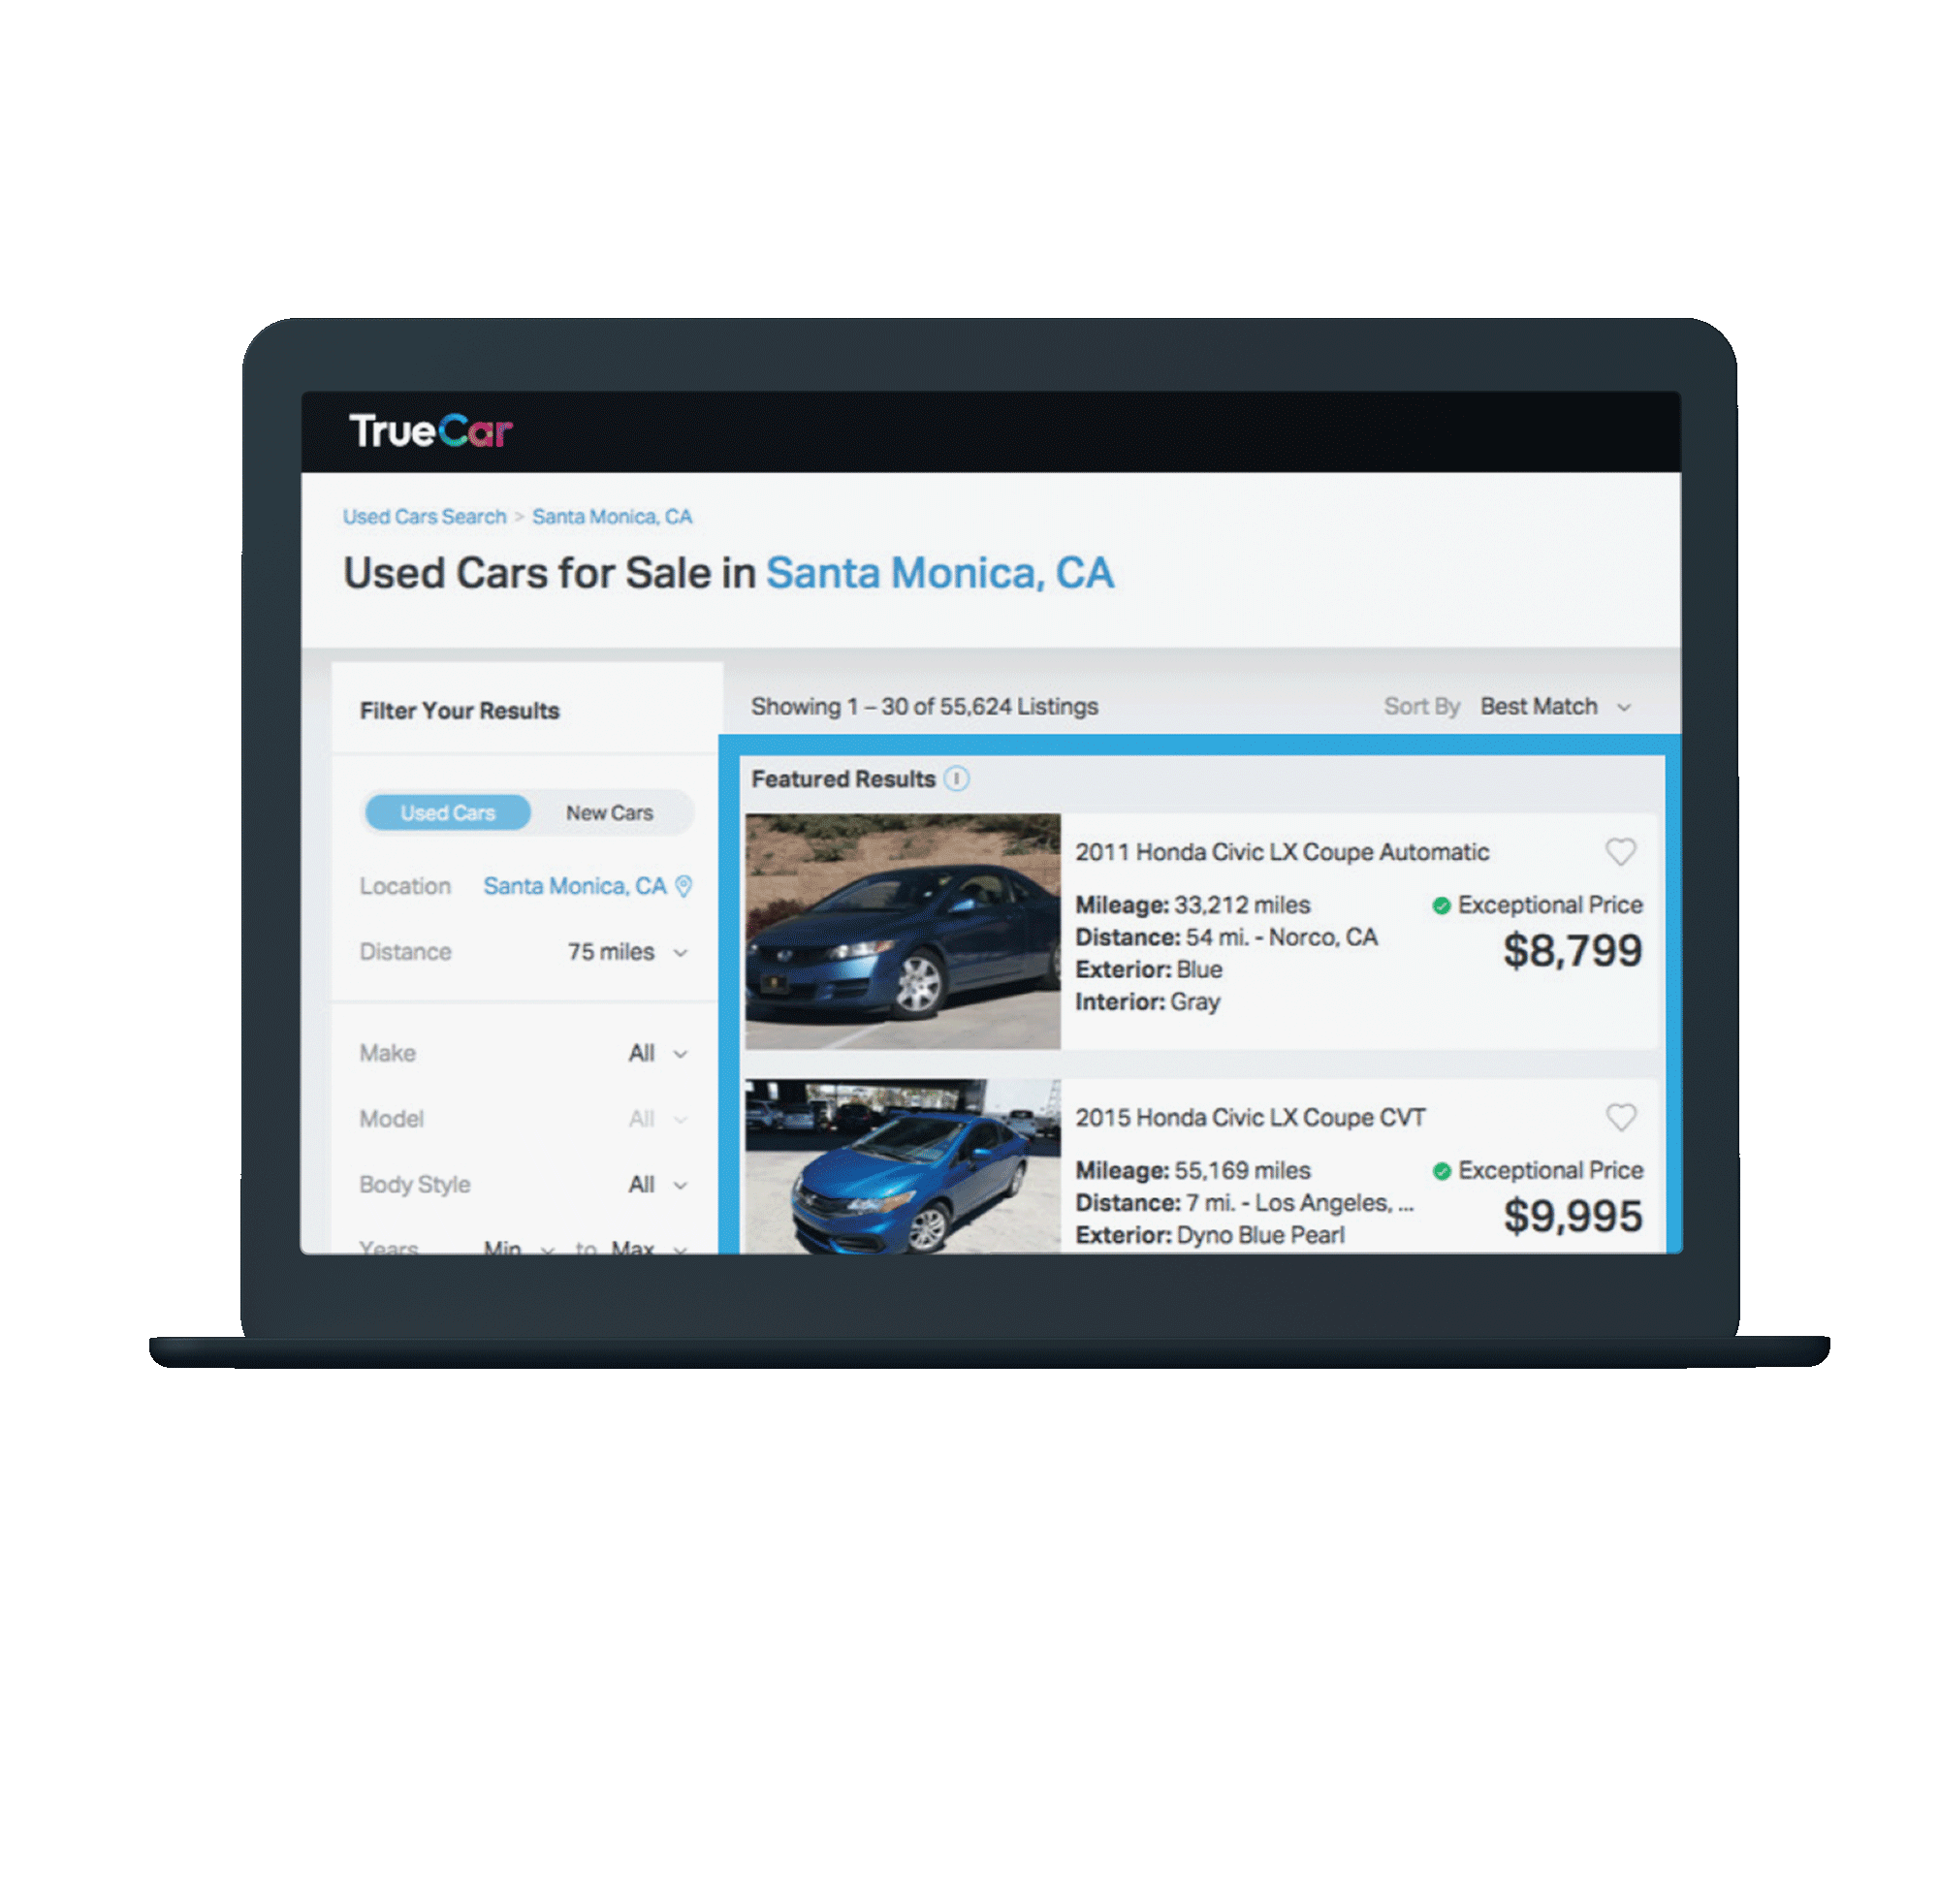 TrueCar Example Sponsored Listing Image Showing Used Cars Available to Dealers